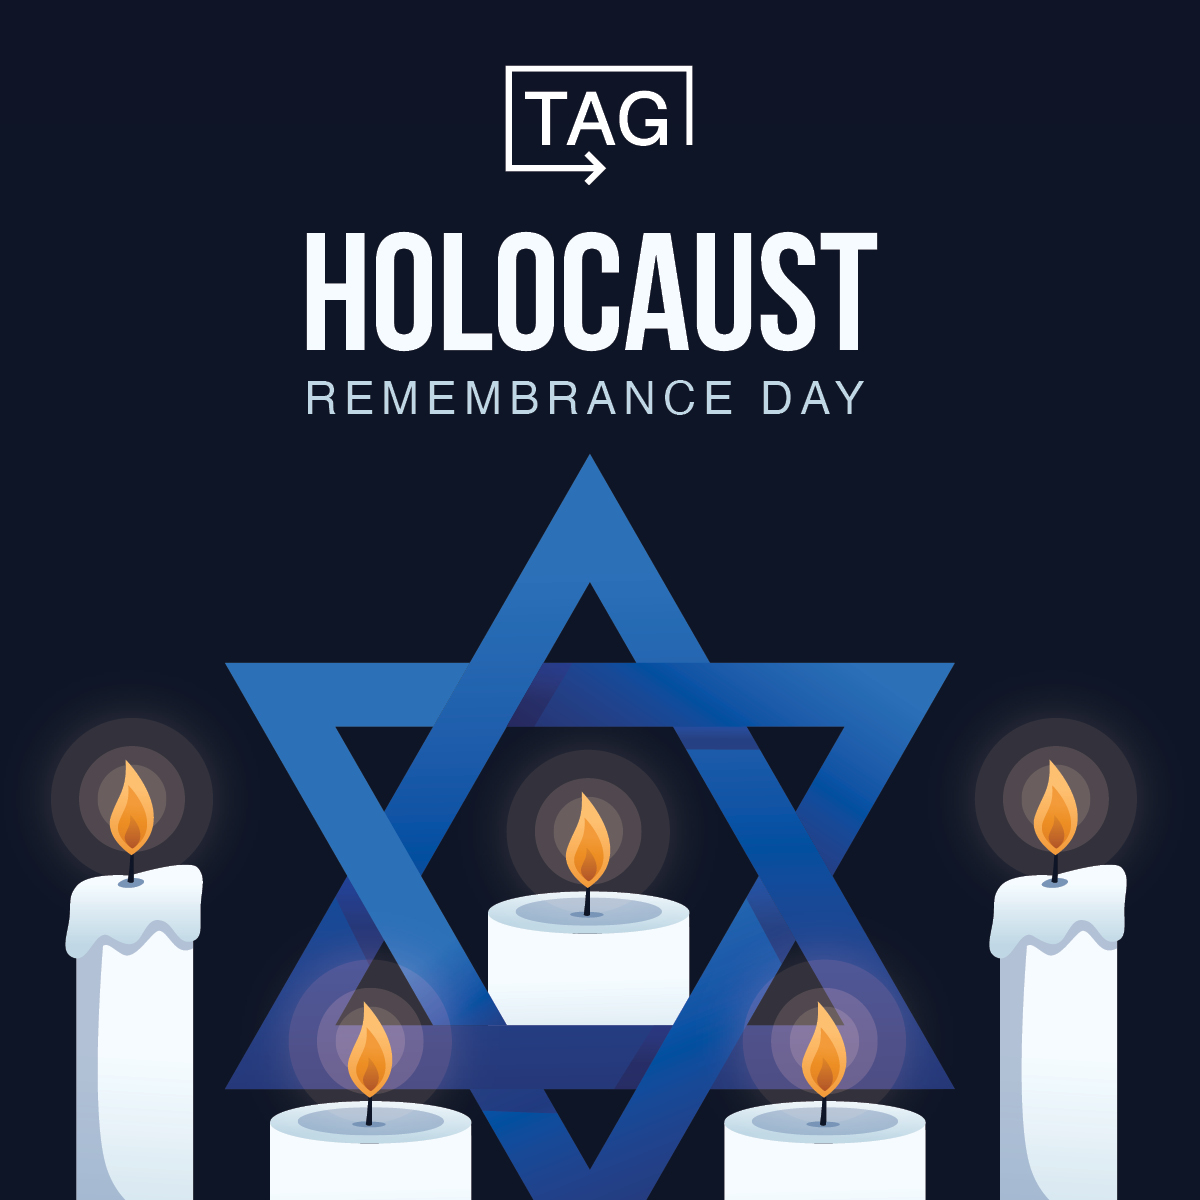 On this day, #WeRemember the 6 million lives that were lost to evil, hate, and bigotry. We honor them by sharing their stories and recommitting ourselves to standing against anti-semitism, prejudice, and intolerance. #HolocaustRemembranceDay